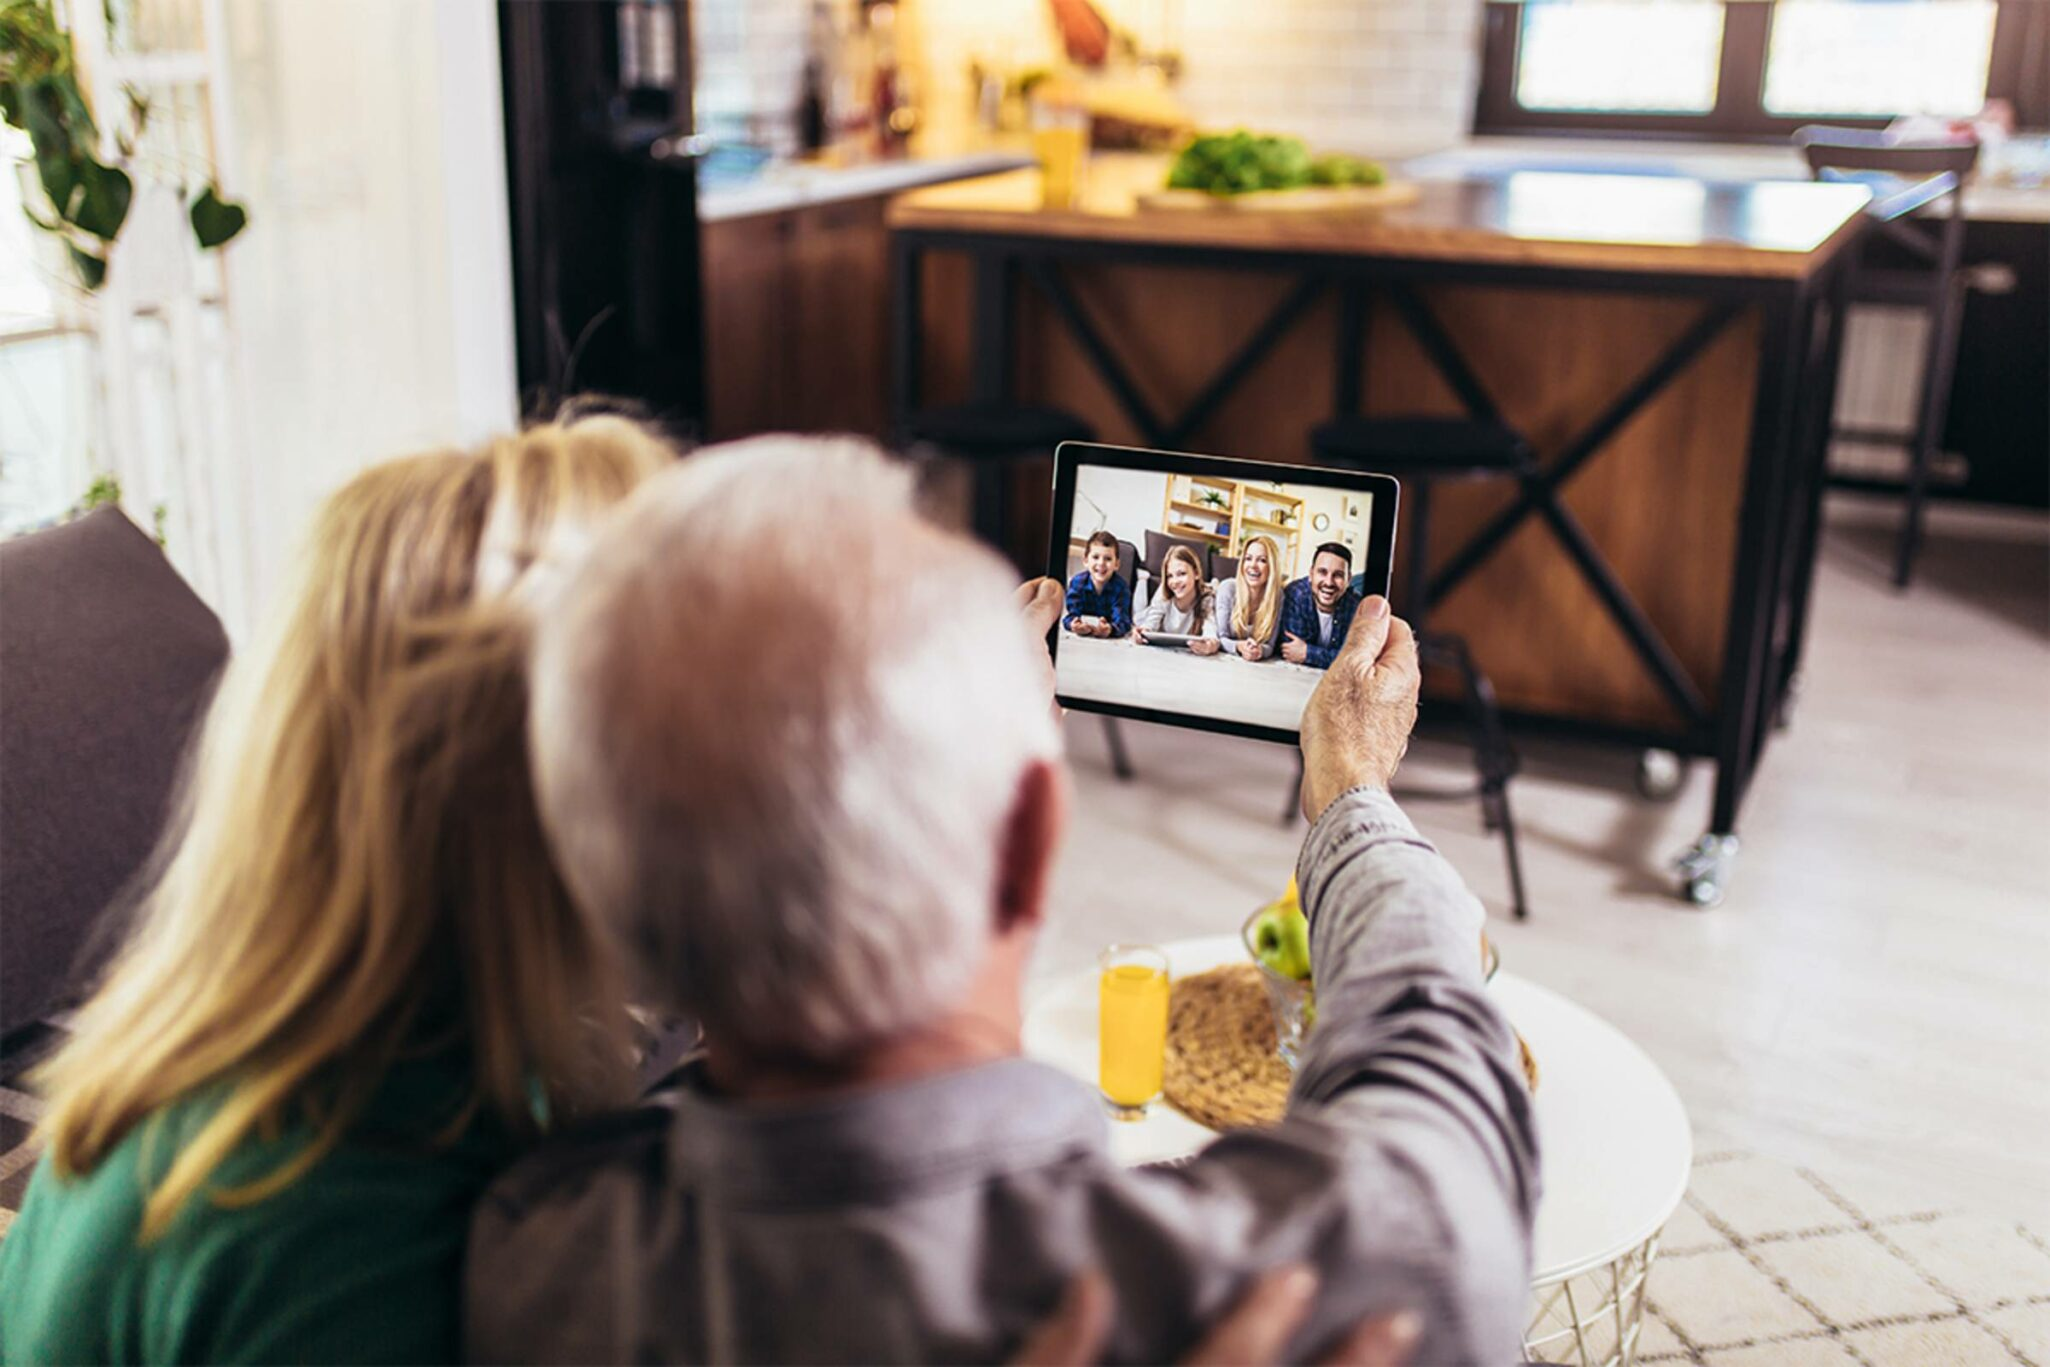 two grandparents facetime their grandkids with ipad